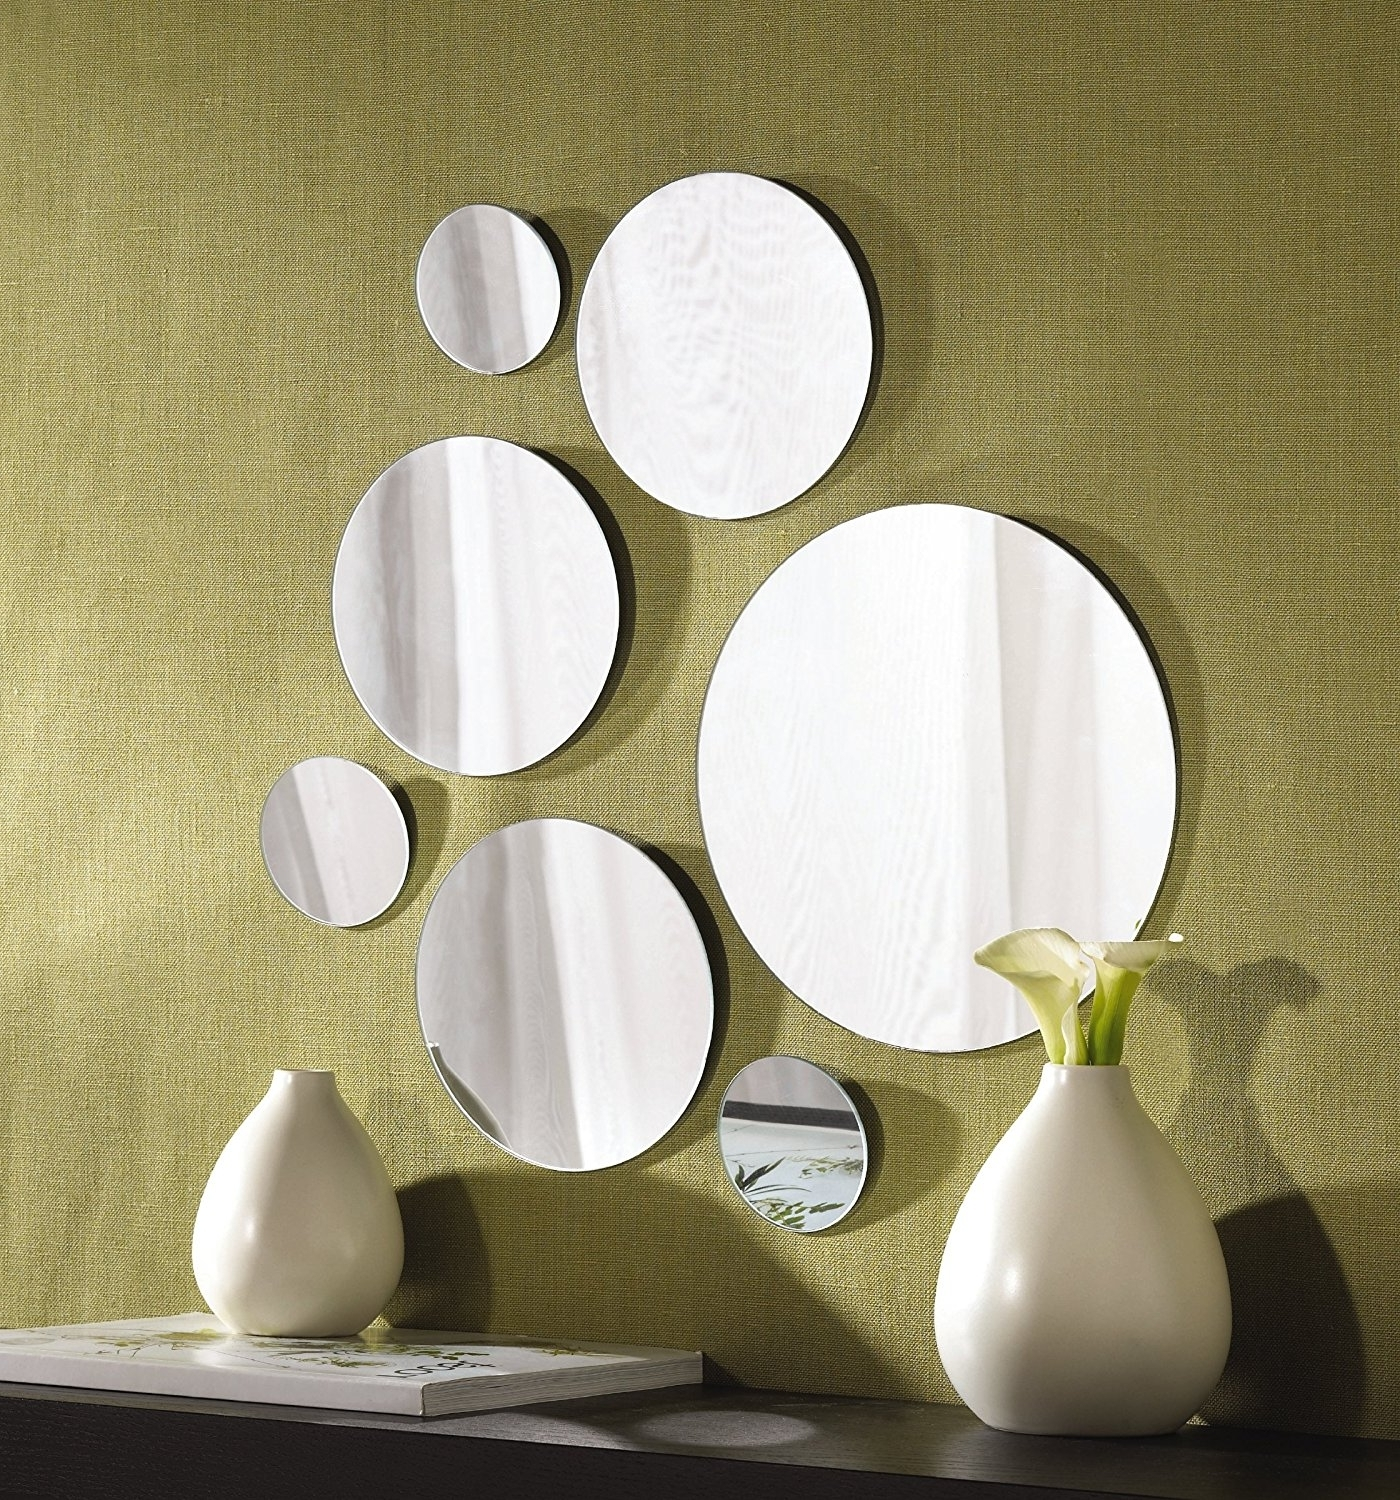 Most Recent Small Round Mirrors Wall Art Inside Elements Mount Mirror